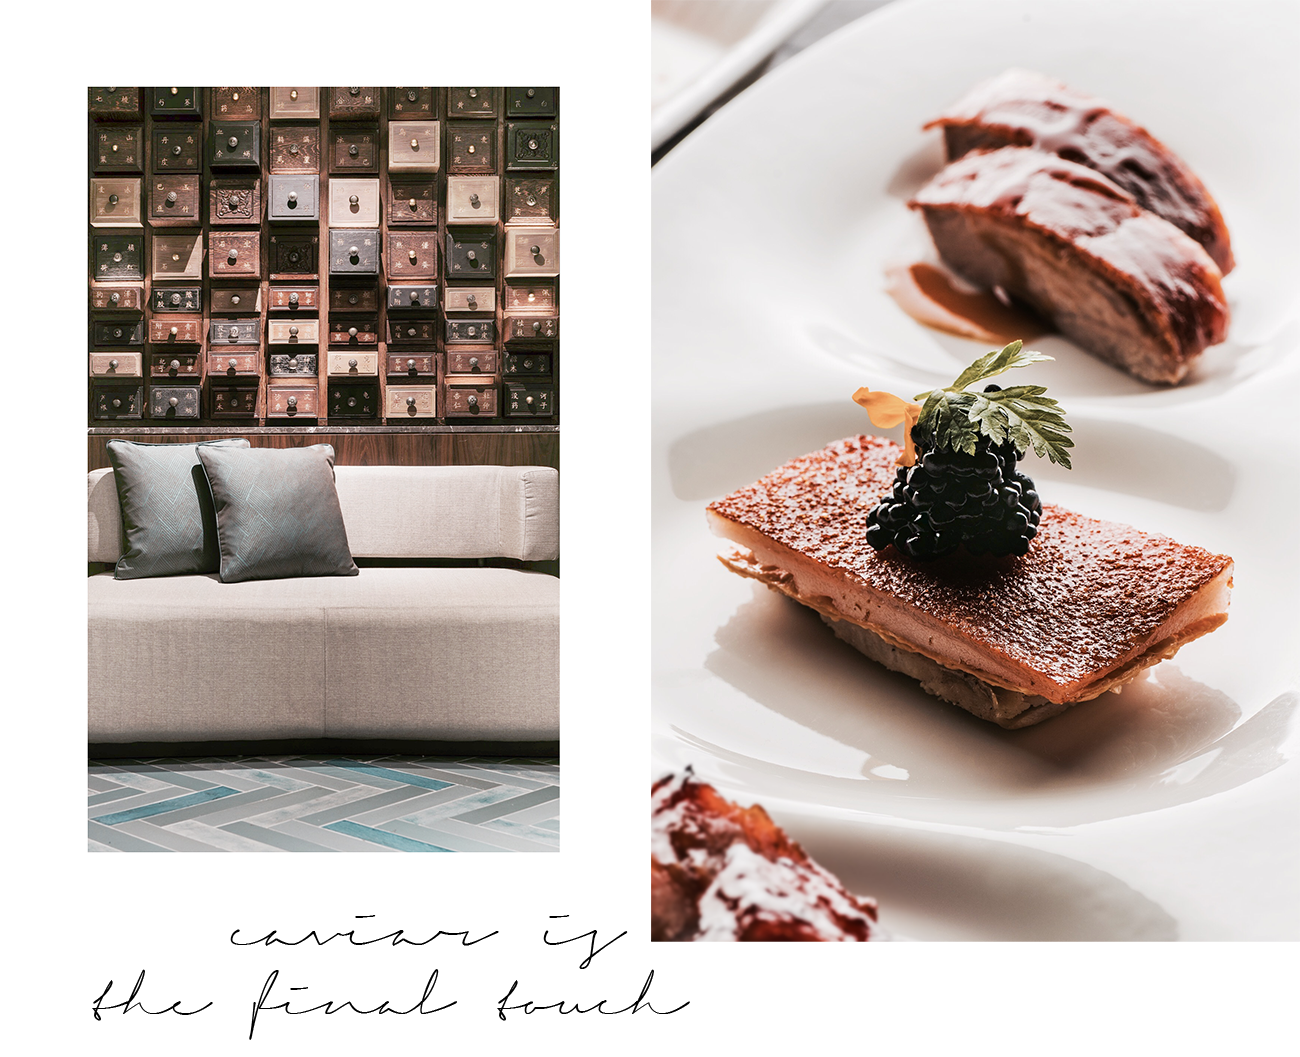 willabelle-ong-paledivision-street-style-fashion-travel-lifestyle-blog-four-seasons-hotel-singapore-editorial-retreat-luxury-peking-duck-caviar